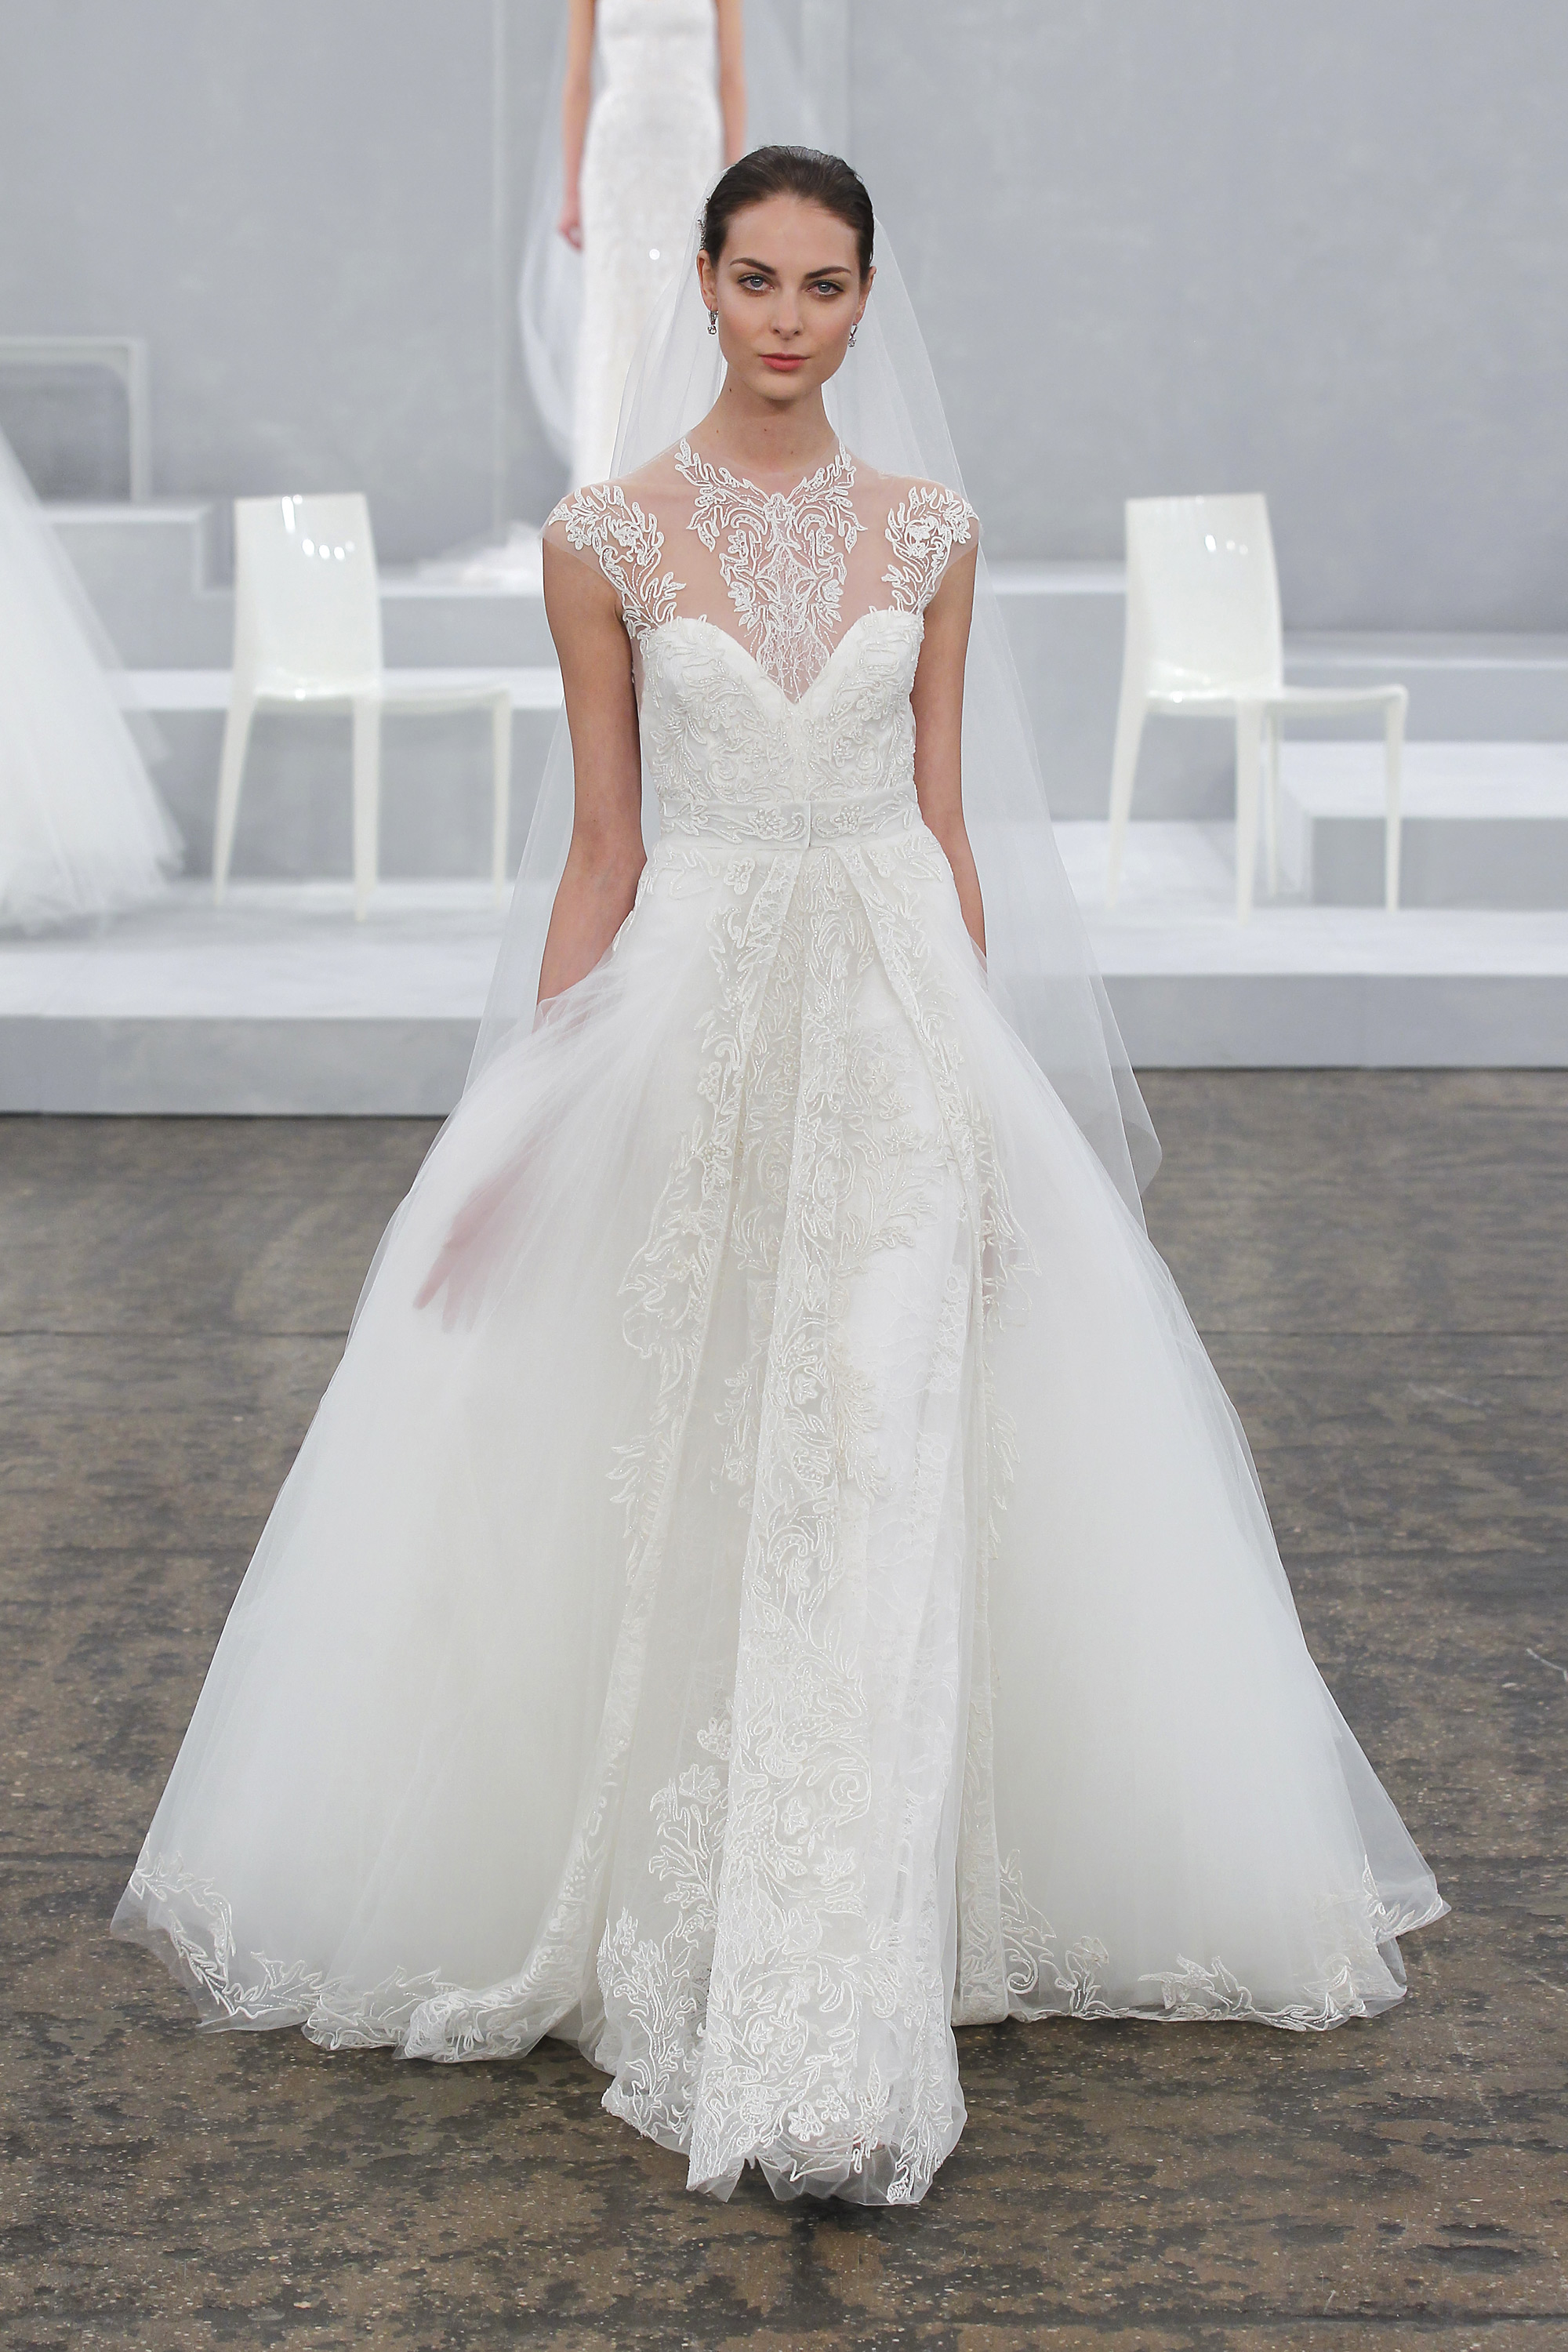 Wedding Dress with a Dramatic Neckline from Monique Lhuillier Spring 2015 Bridal Collection